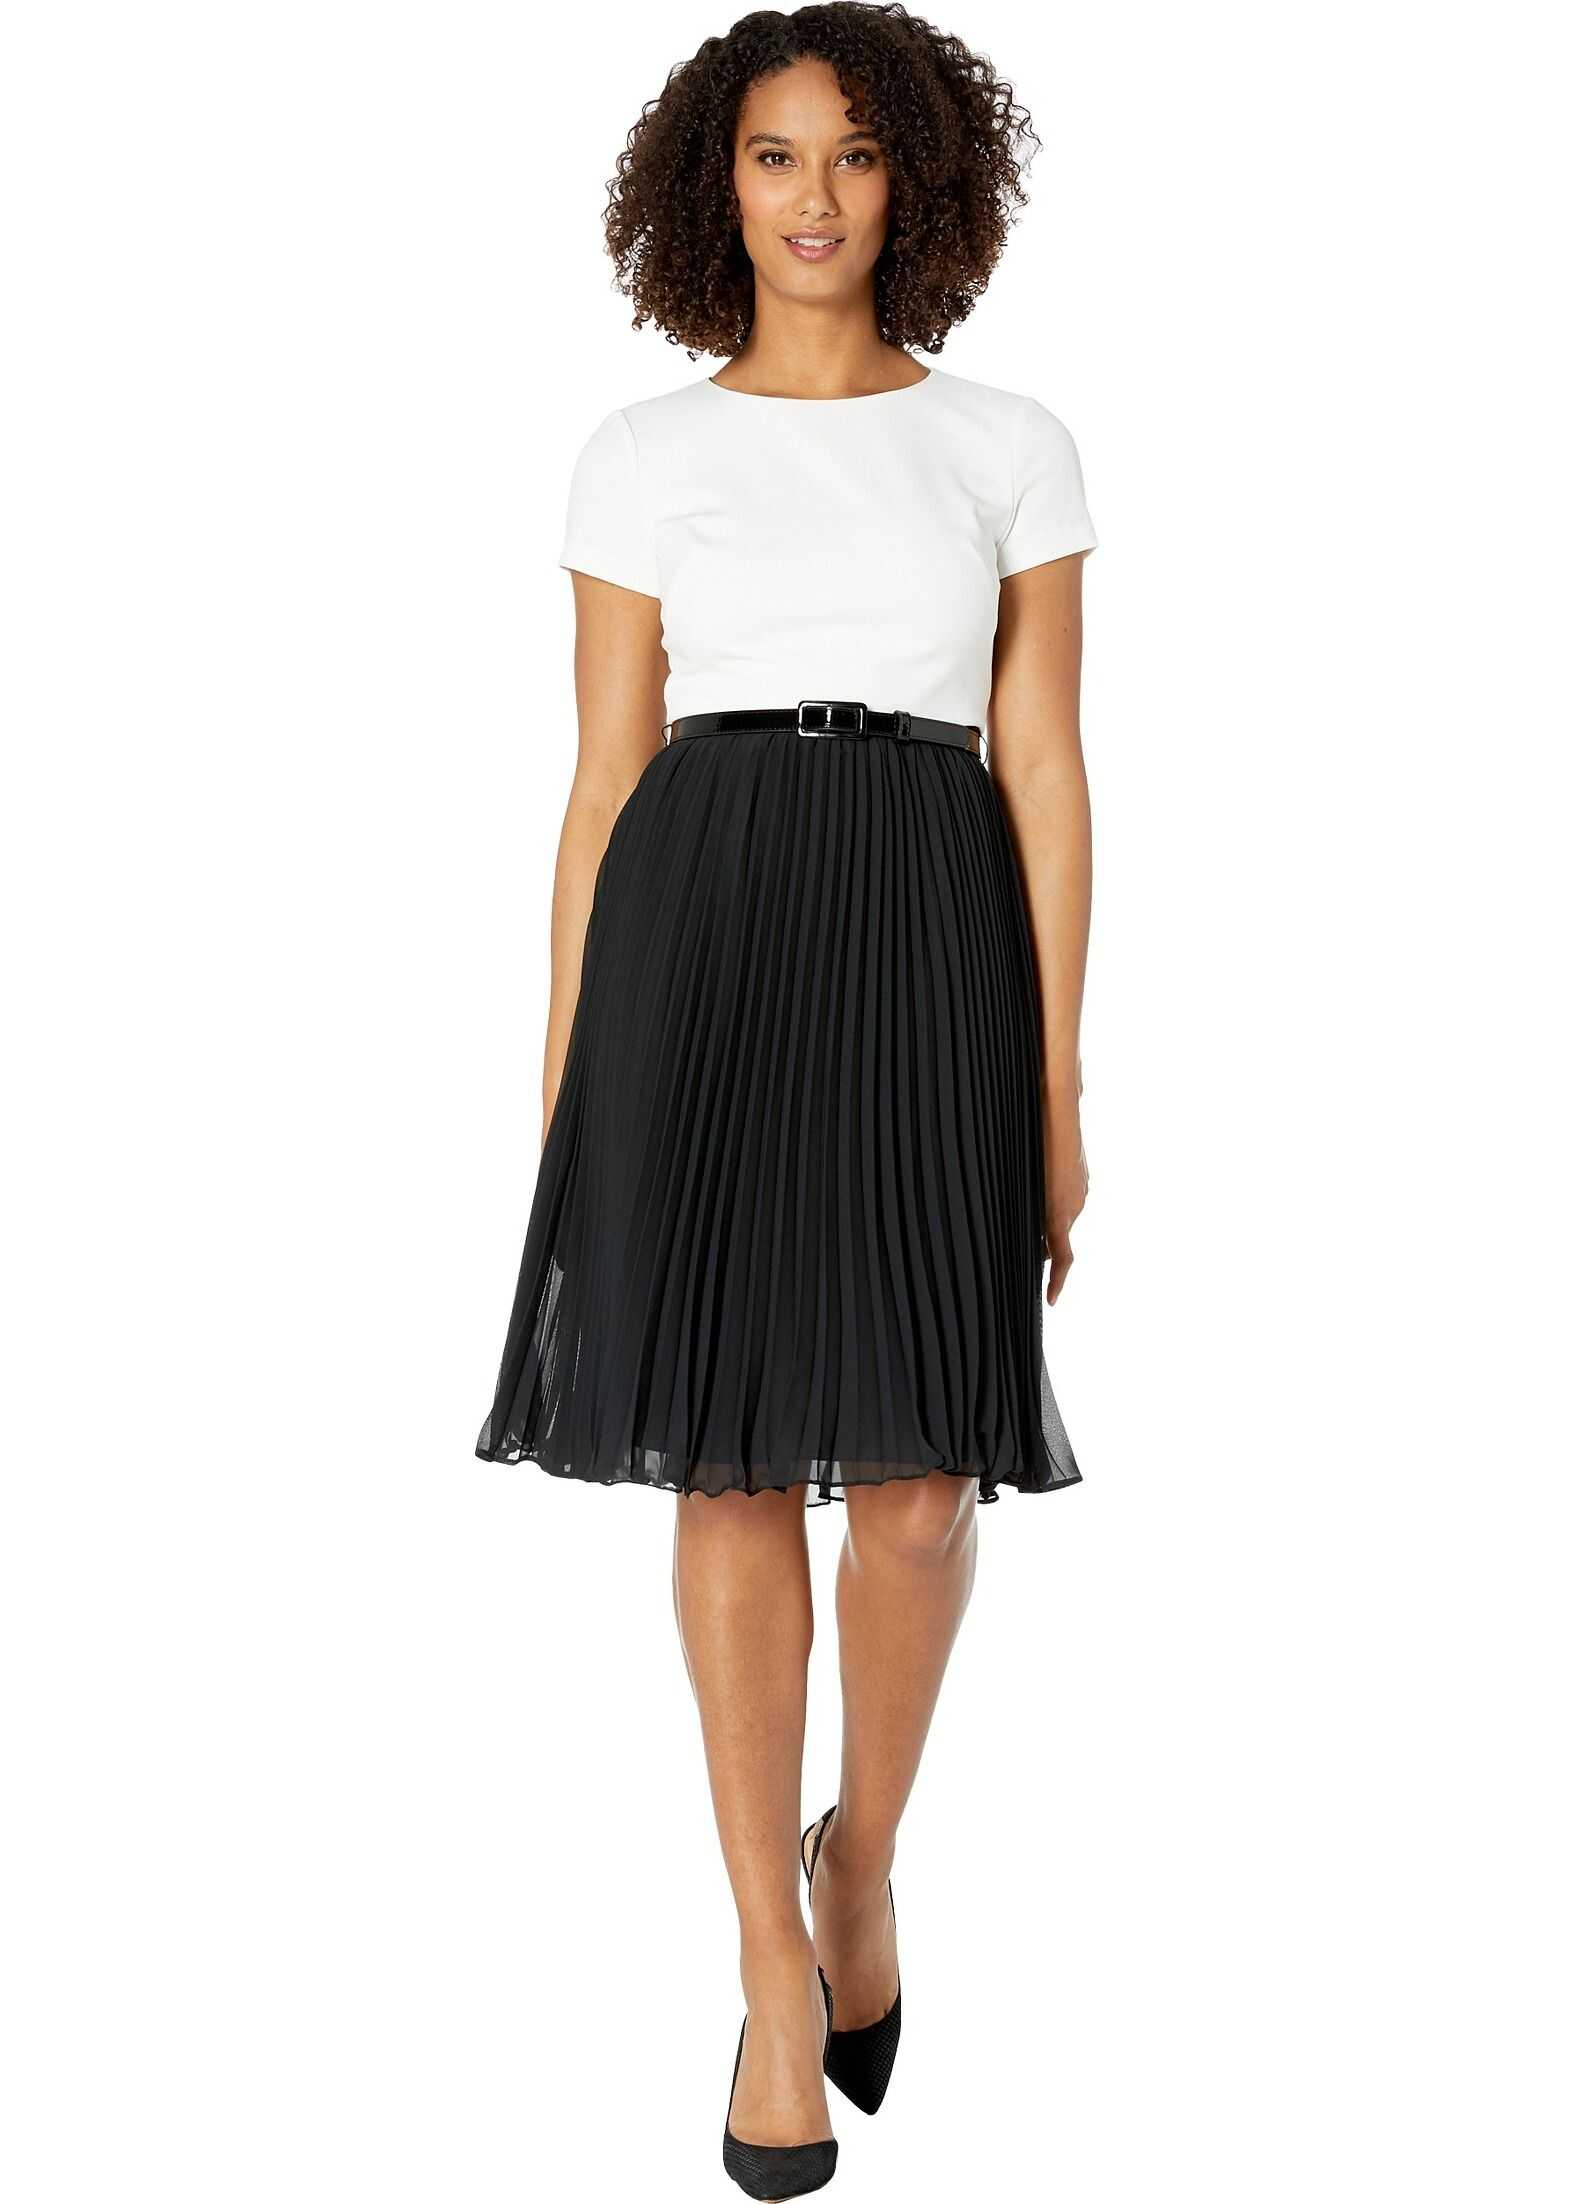 Adrianna Papell T-Shirt Dress with Belt and Chiffon Pleated Skirt Ivory/Black